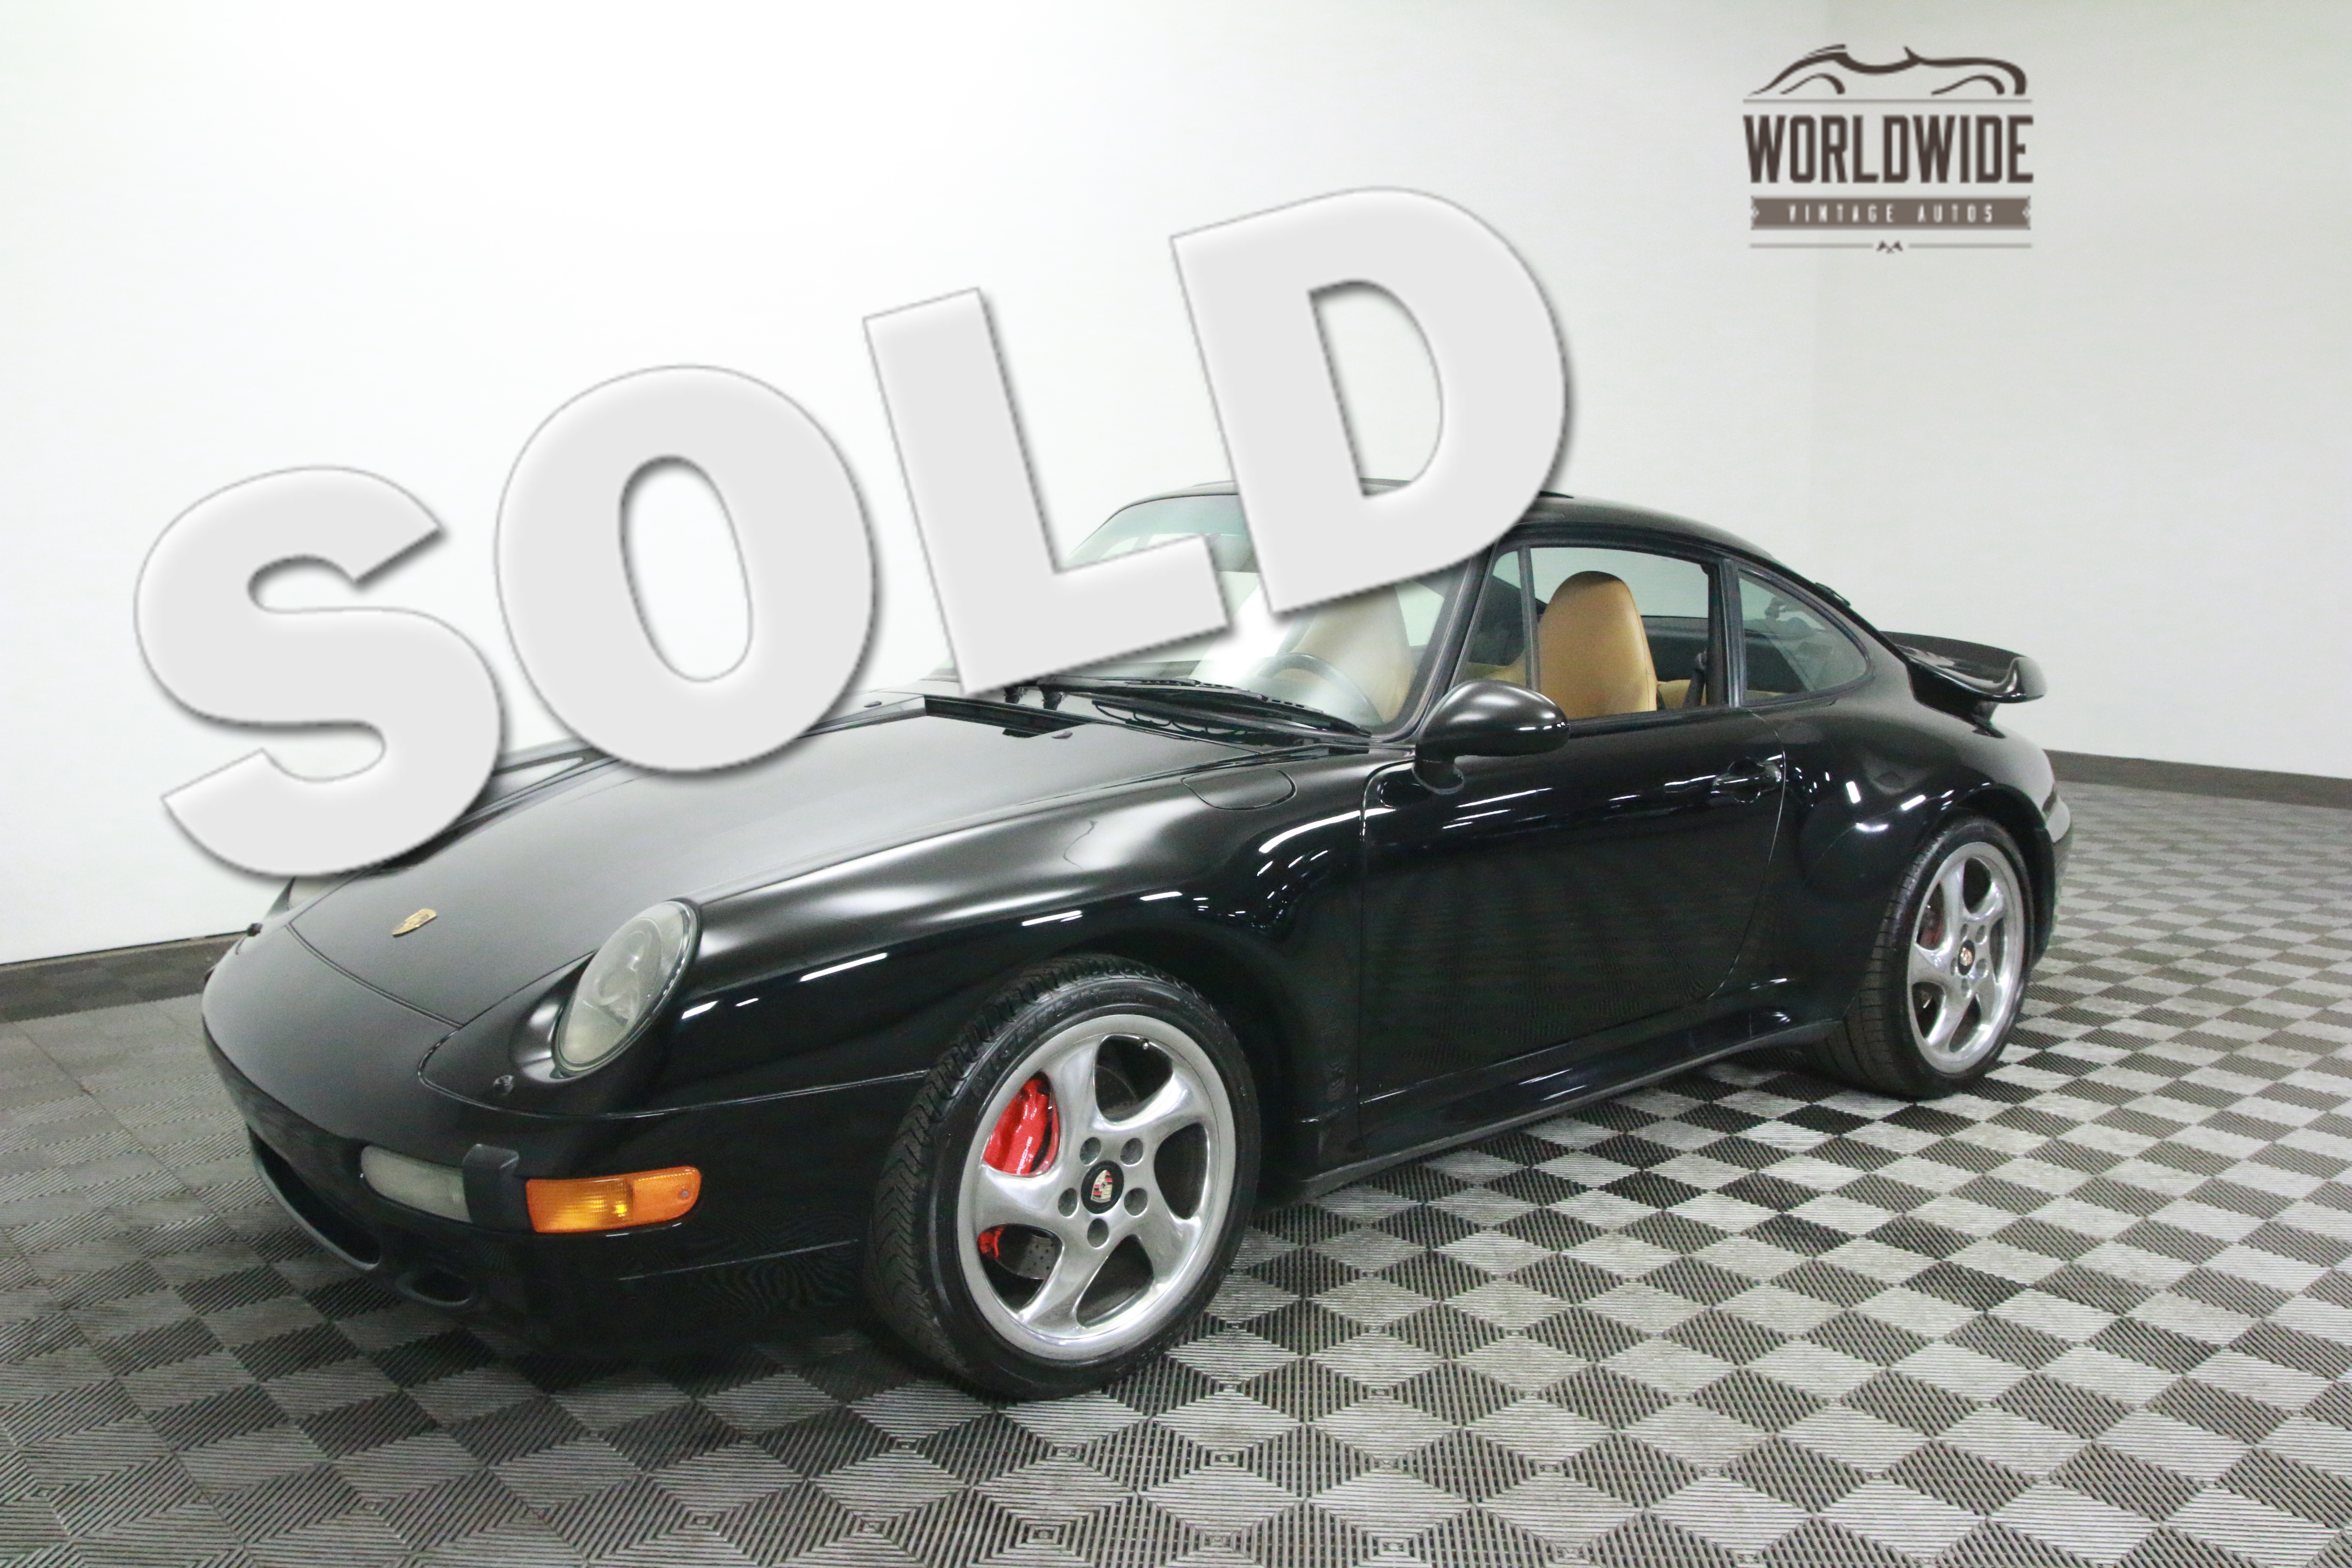 1996 Porsche 911 Carrera 993 TURBO! GORGEOUS. HIGHLY OPTIONED!